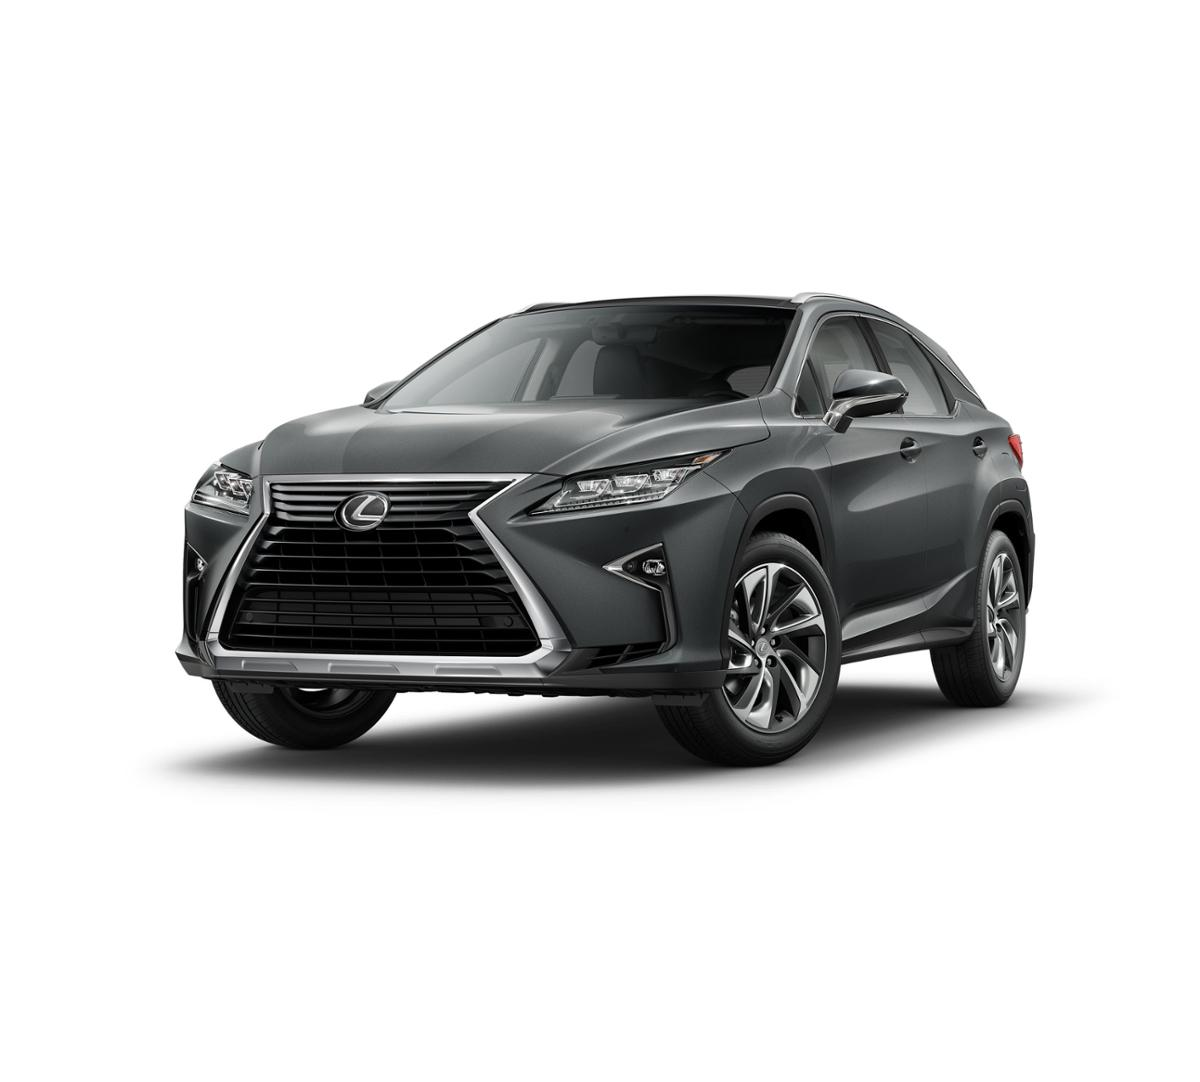 2018 Lexus RX 350 Vehicle Photo in Larchmont, NY 10538